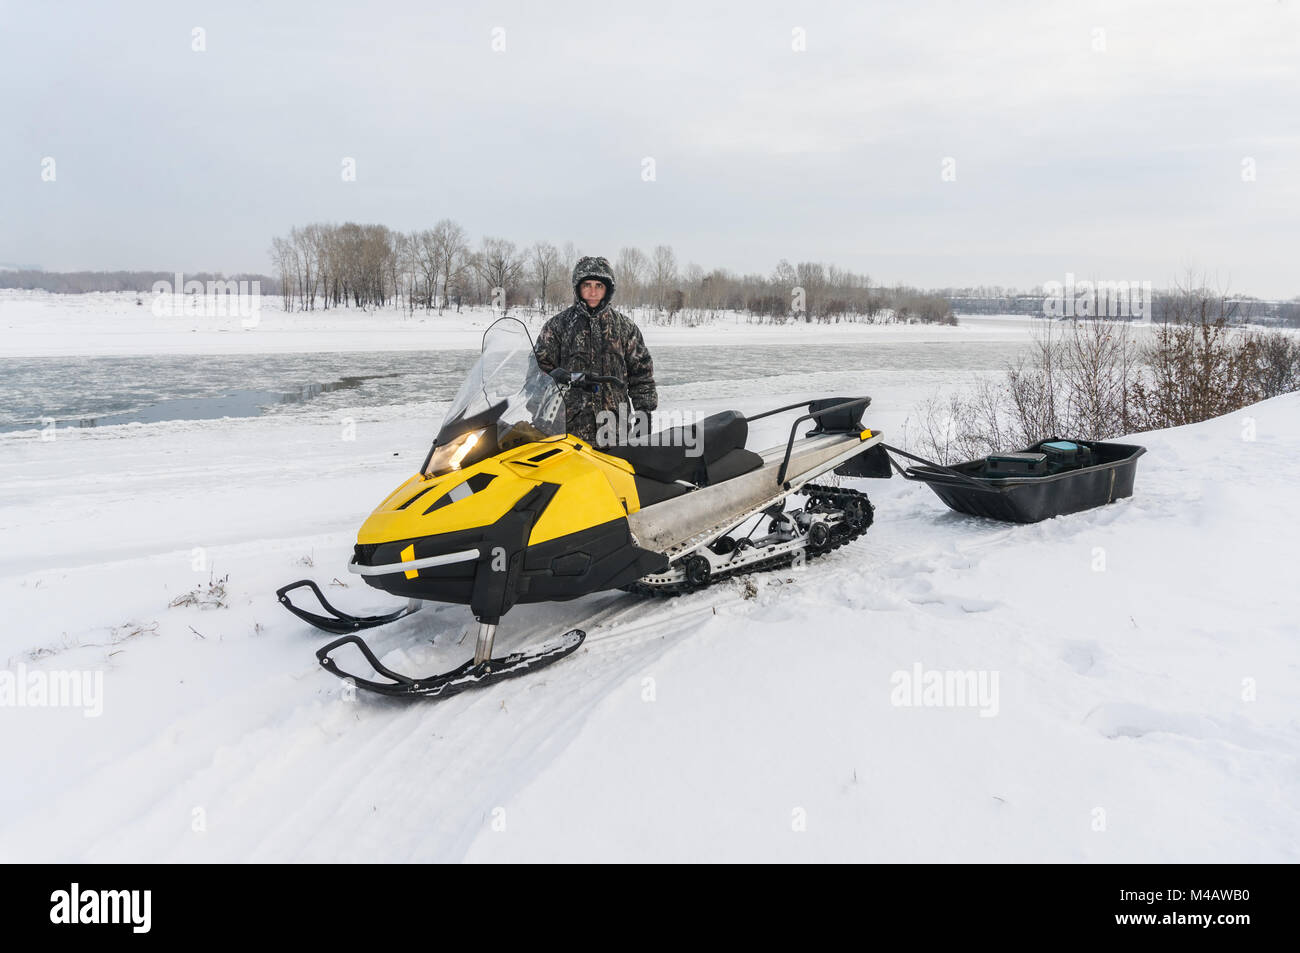 Fisherman on a snowmobile - Stock Image